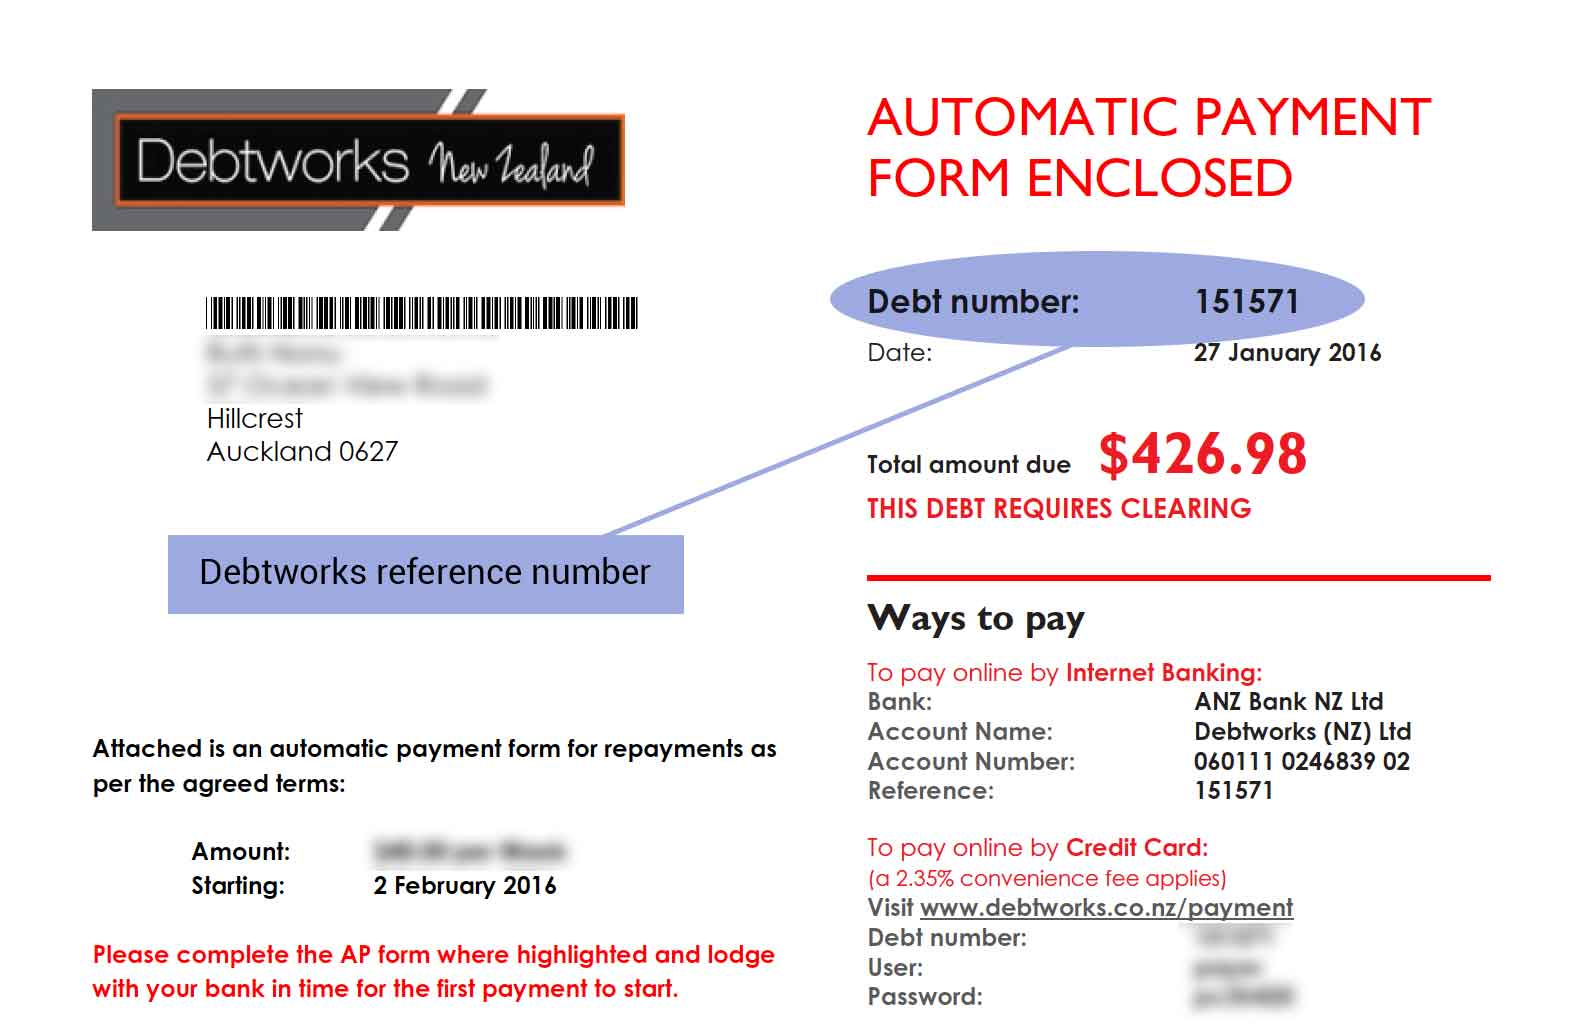 Debtworks Debt Number. Click to enlarge.